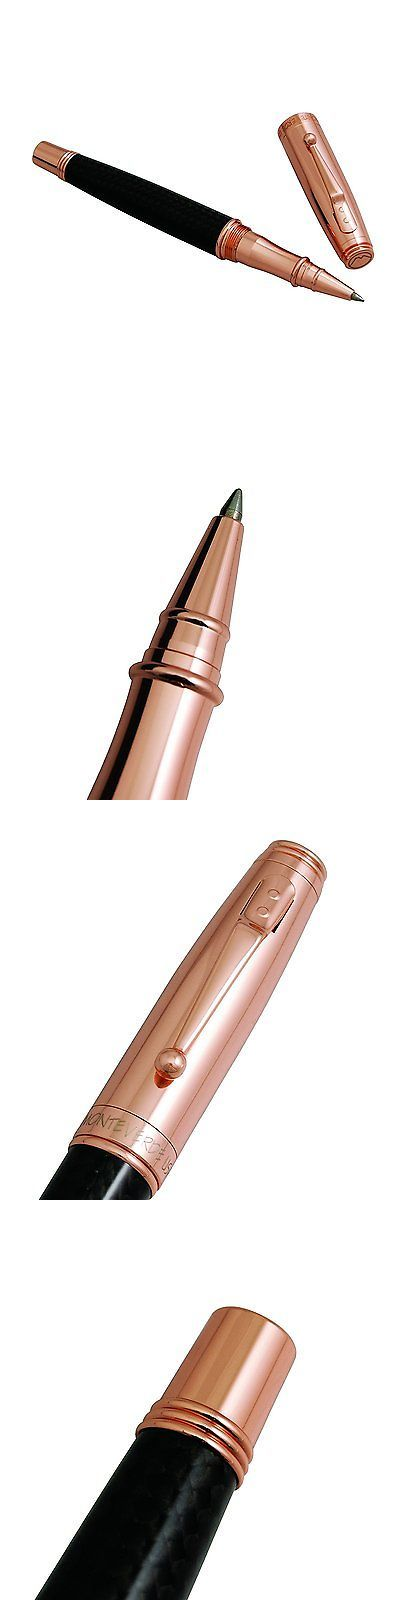 Pens and Pencils 102953: Monteverde Invincia Rose Gold With Black Carbon Fiber Rollerball Pen Mv40061 -> BUY IT NOW ONLY: $87.69 on eBay!